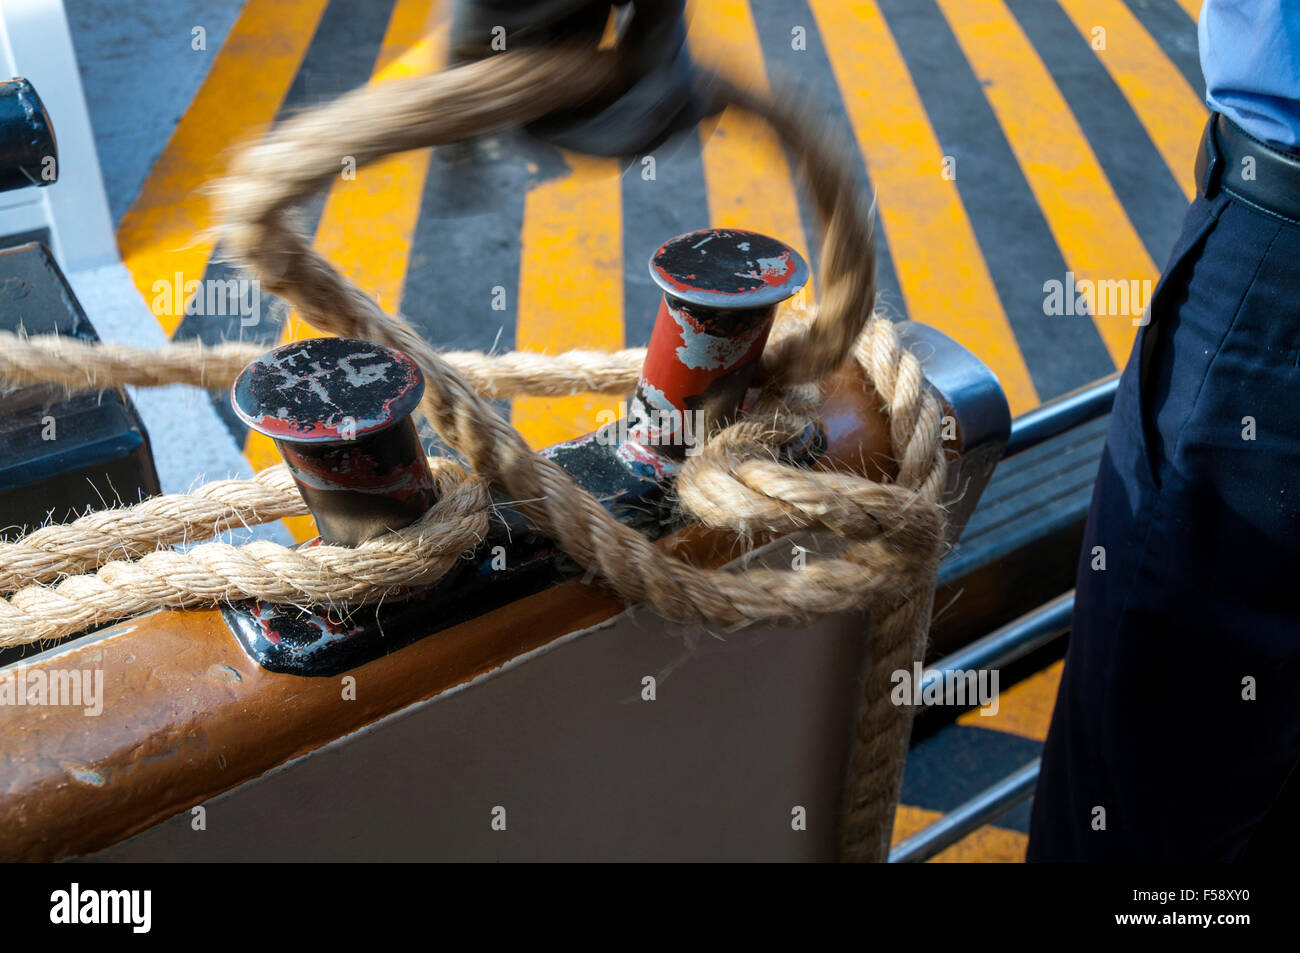 Mooring a Vaporetto at a stop on Grand Canal, Venice, Italy - Stock Image